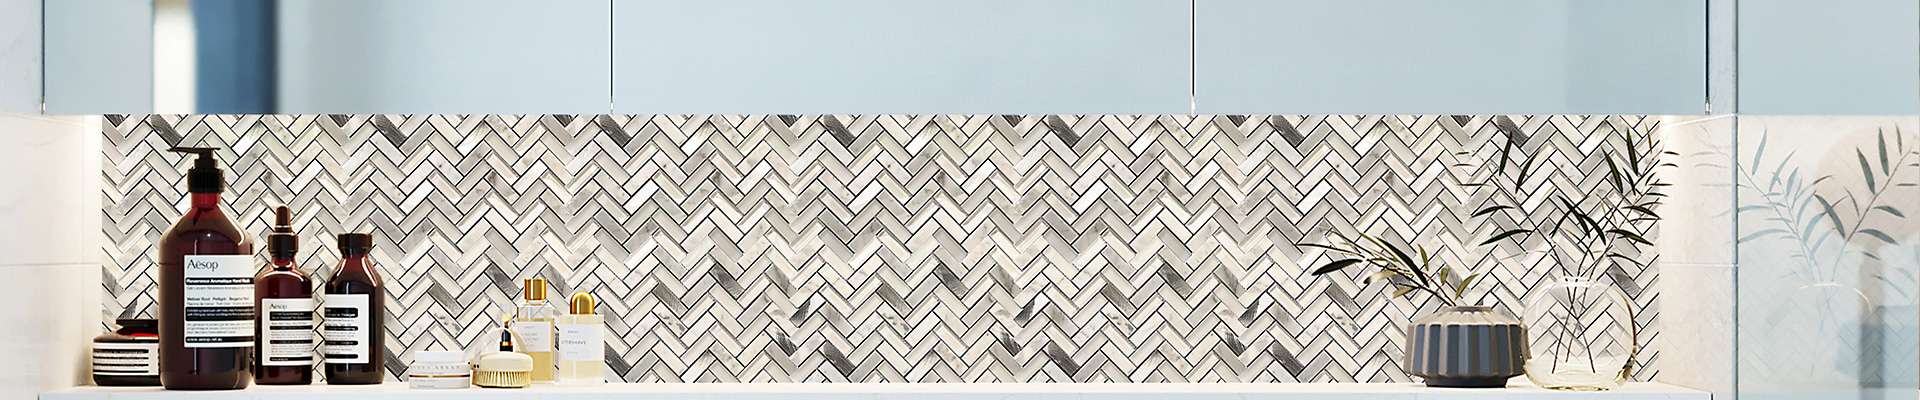 Heng Xing-Diamond Copper Aluminum Alloy Metal Mosaic Wall Tile  HLC16